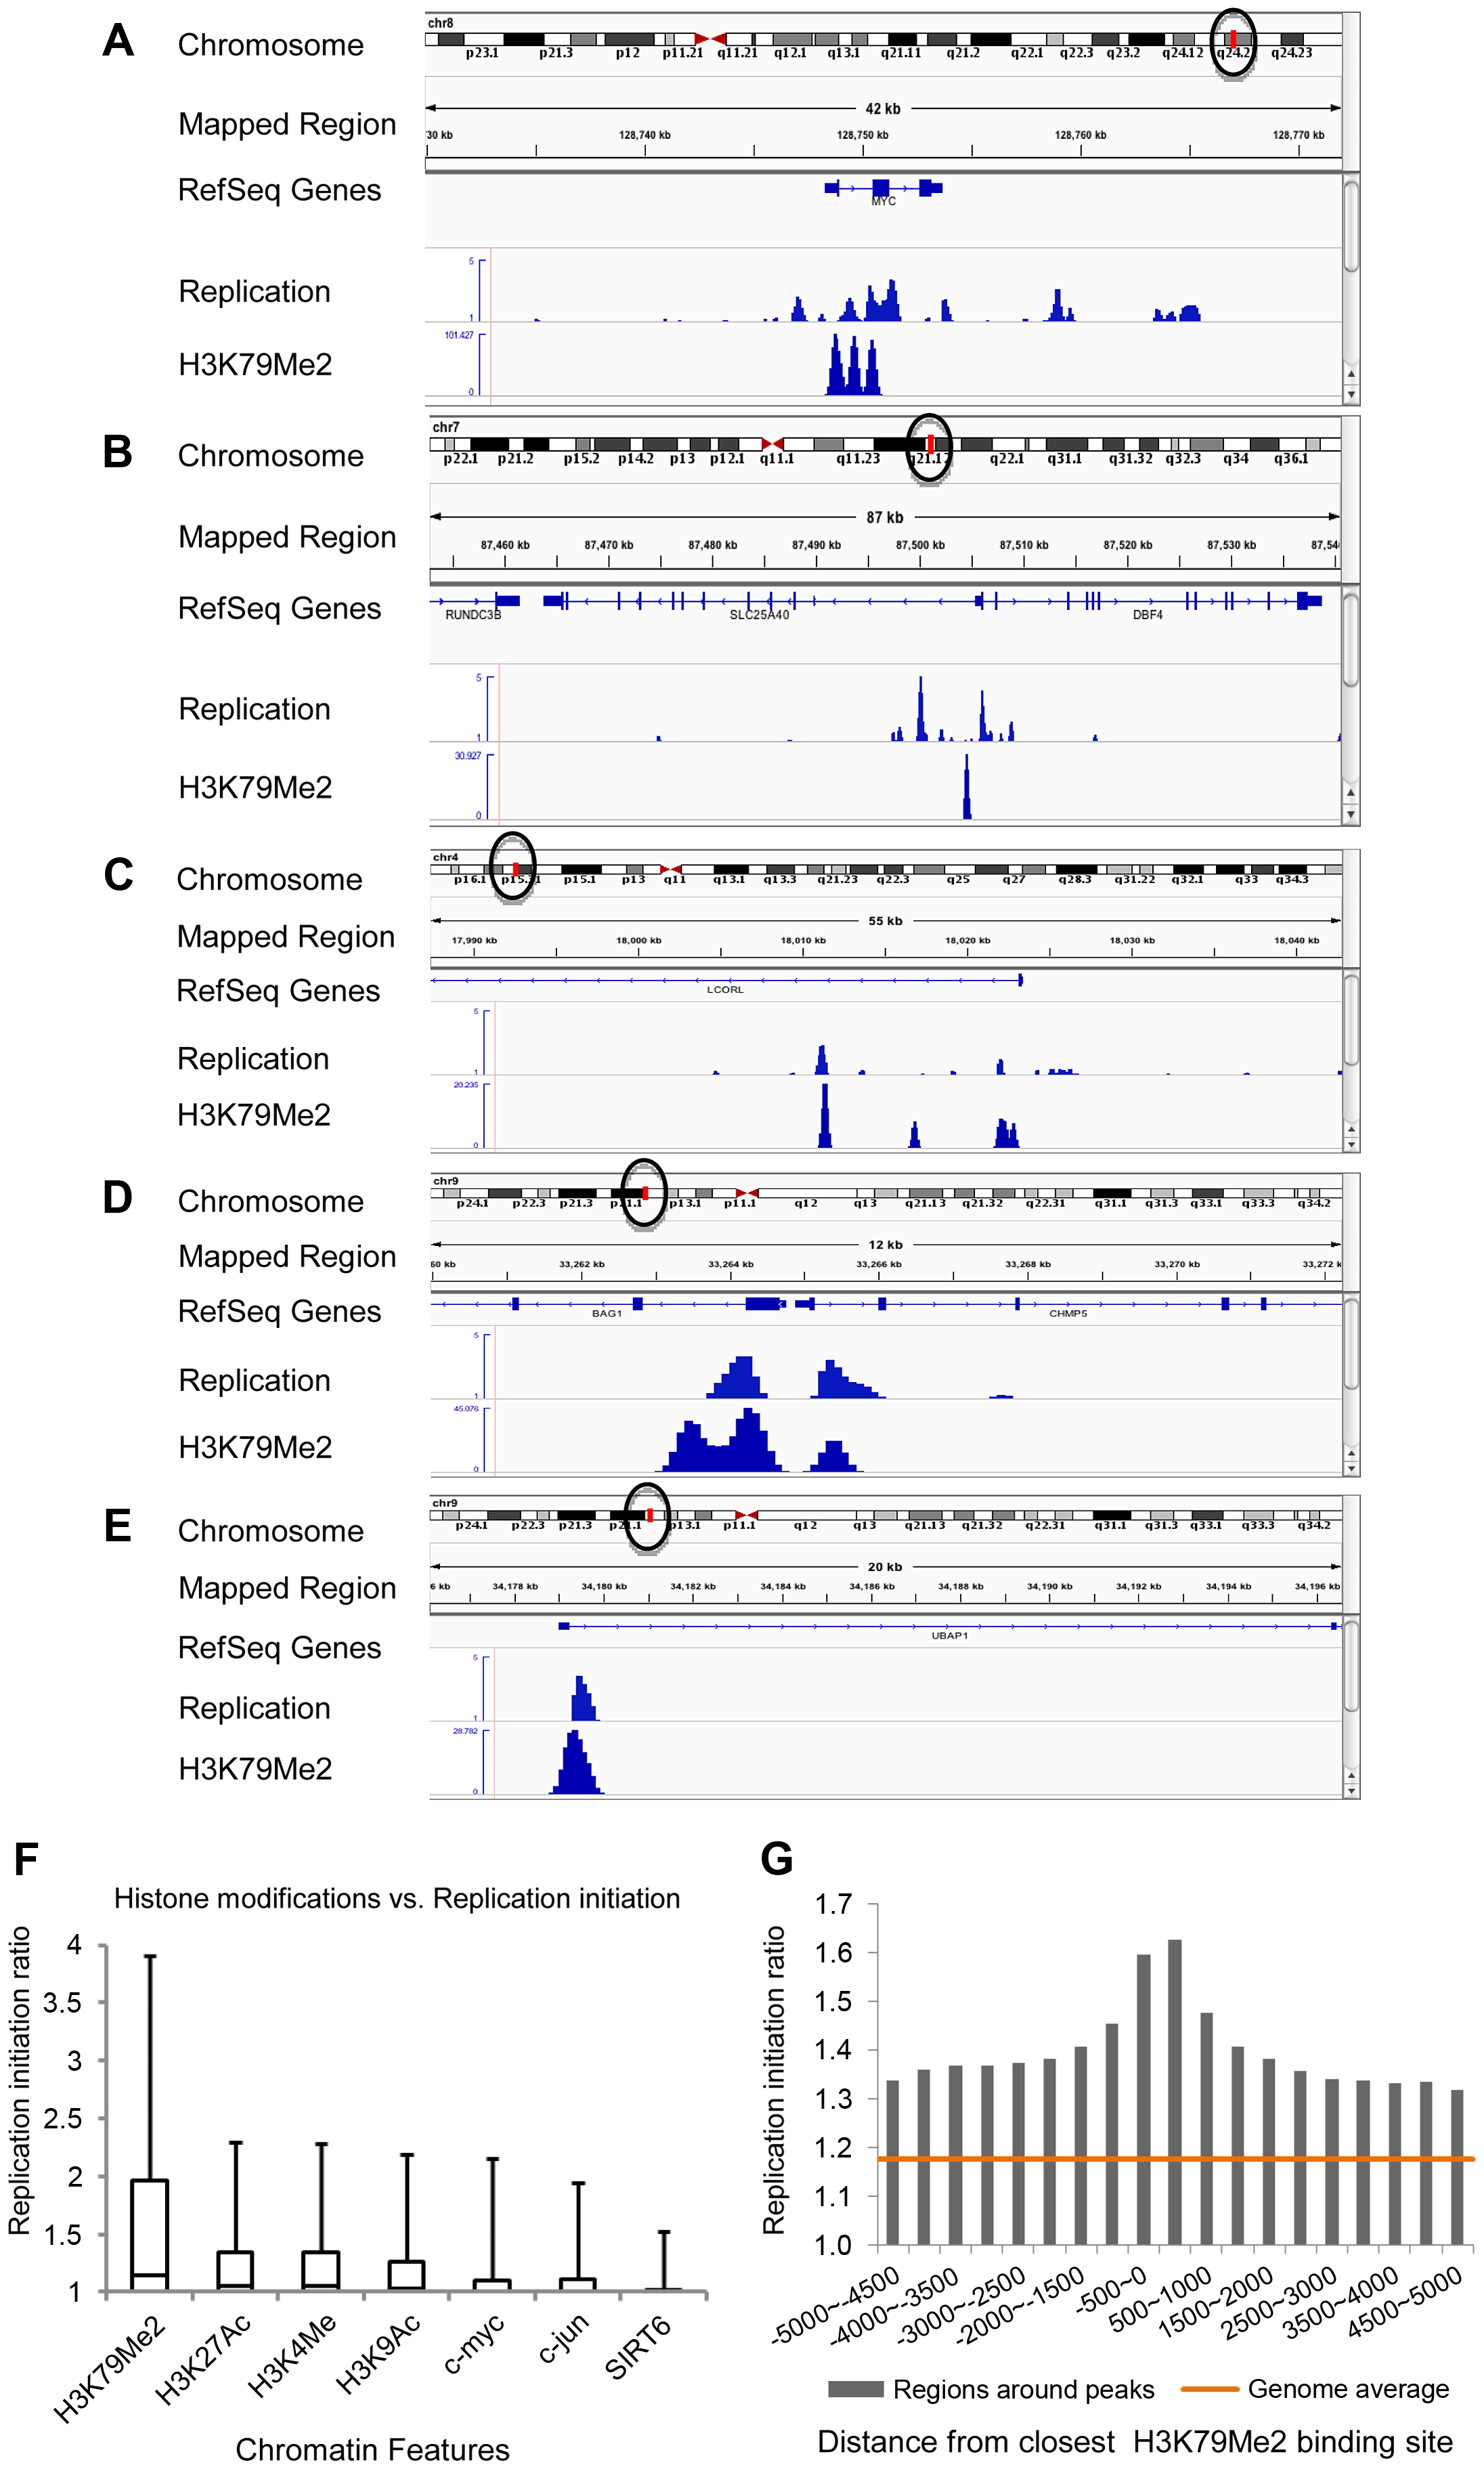 H3K79Me2 containing chromatin is associated preferentially with replication initiation sites genome-wide.